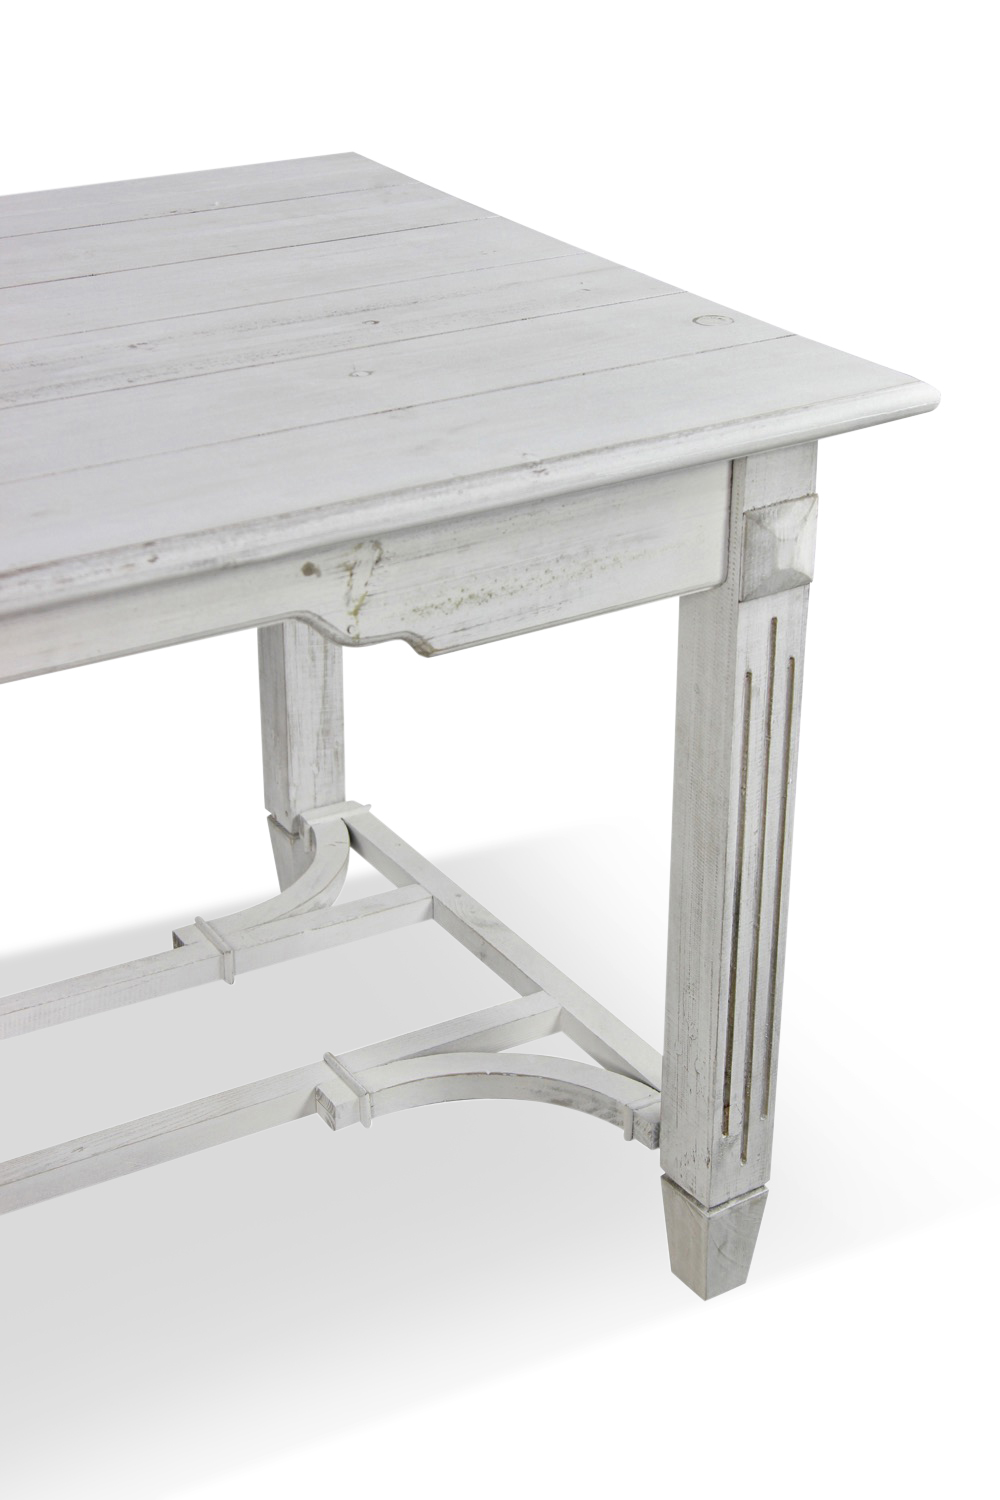 Table bois ceruse - Table basse bois blanc ceruse ...